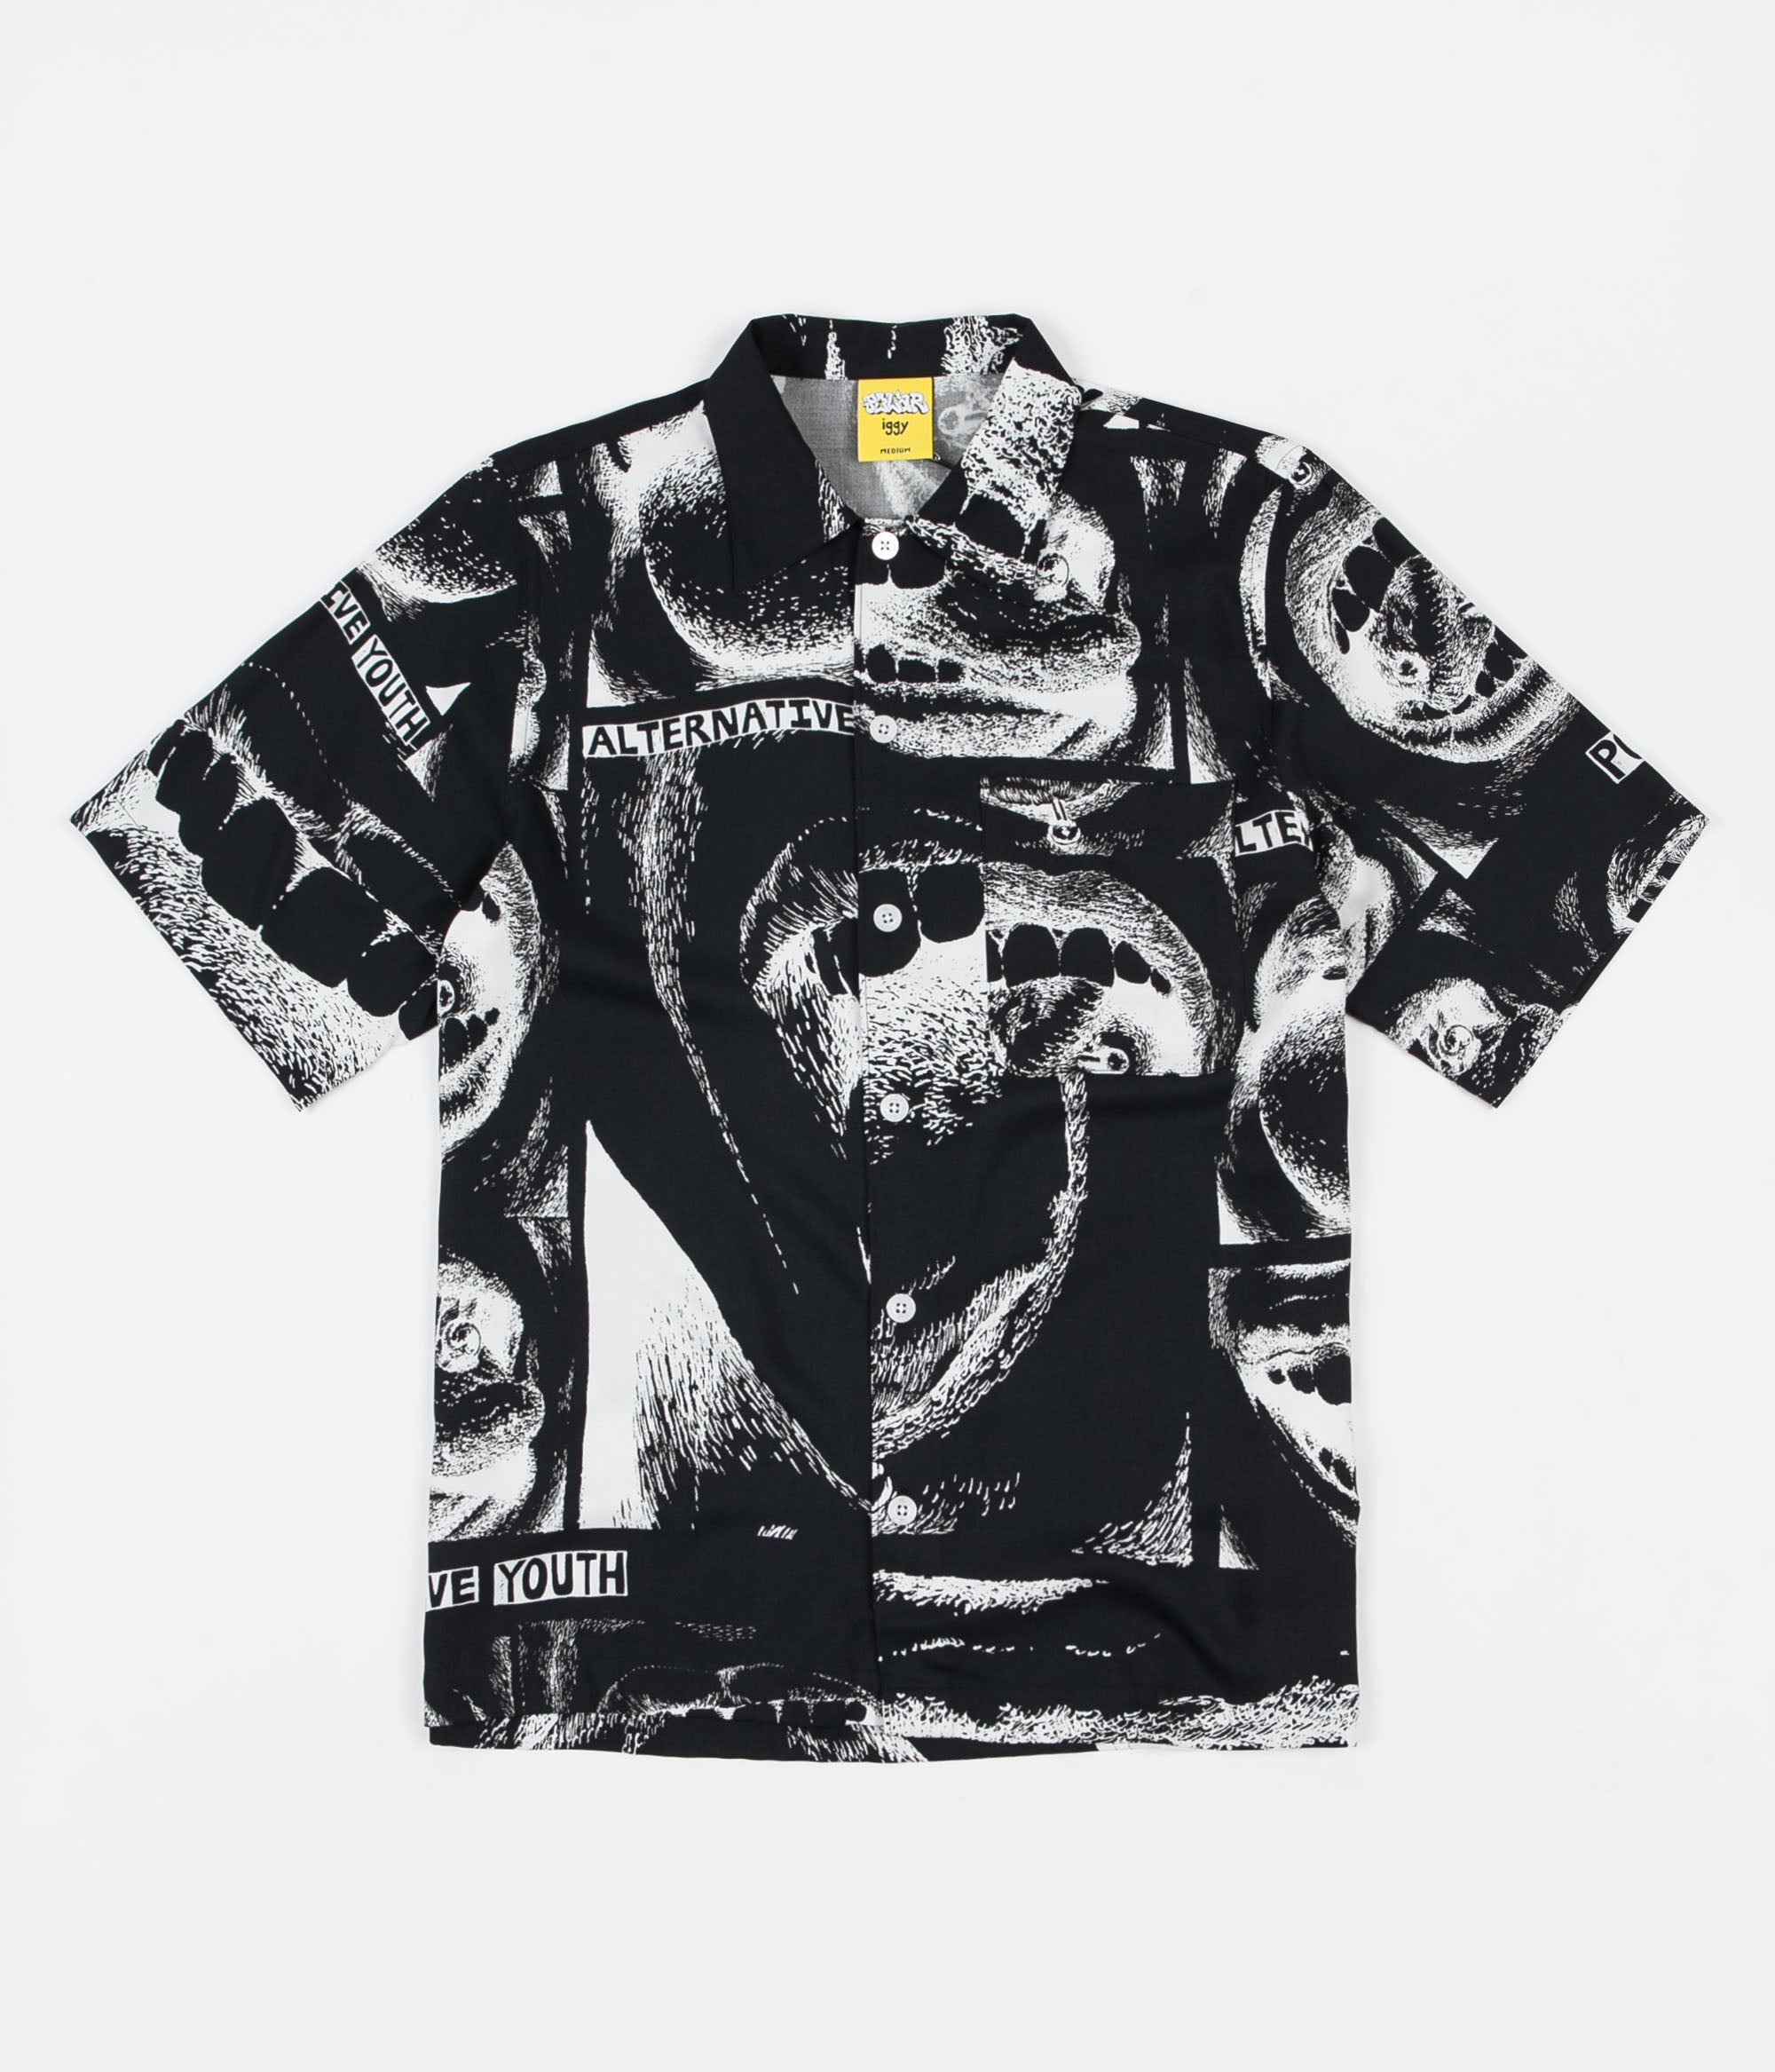 Polar x Iggy Alternative Youth Shirt - Black